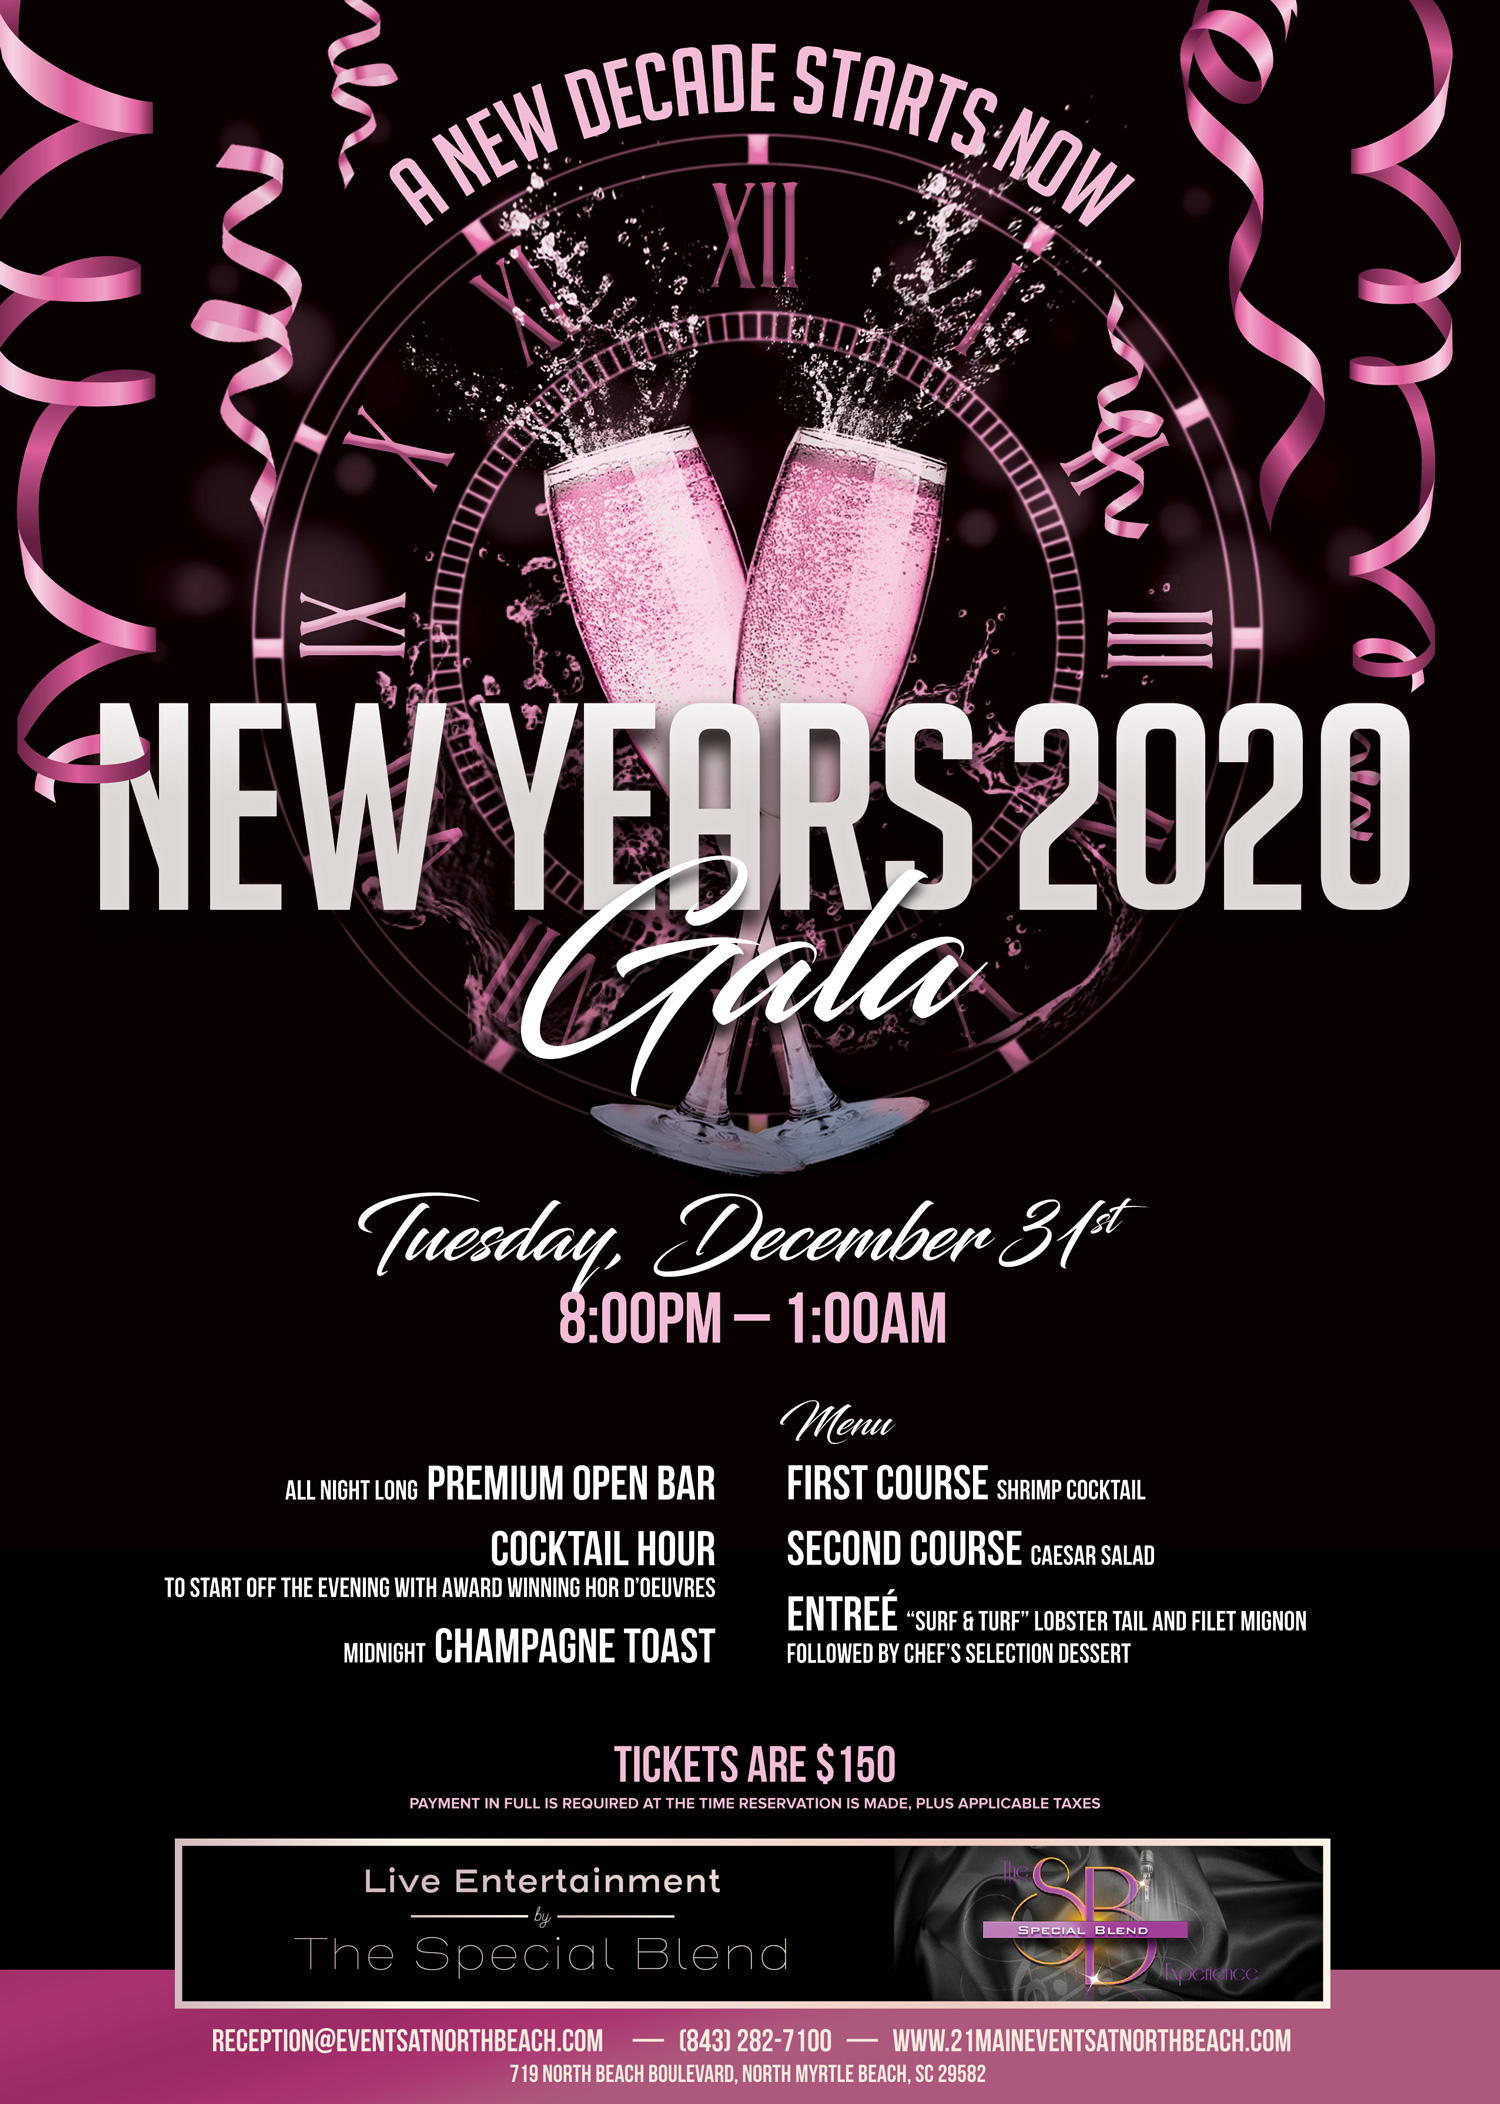 New Years Eve Gala at North Beach 2019 call for more information